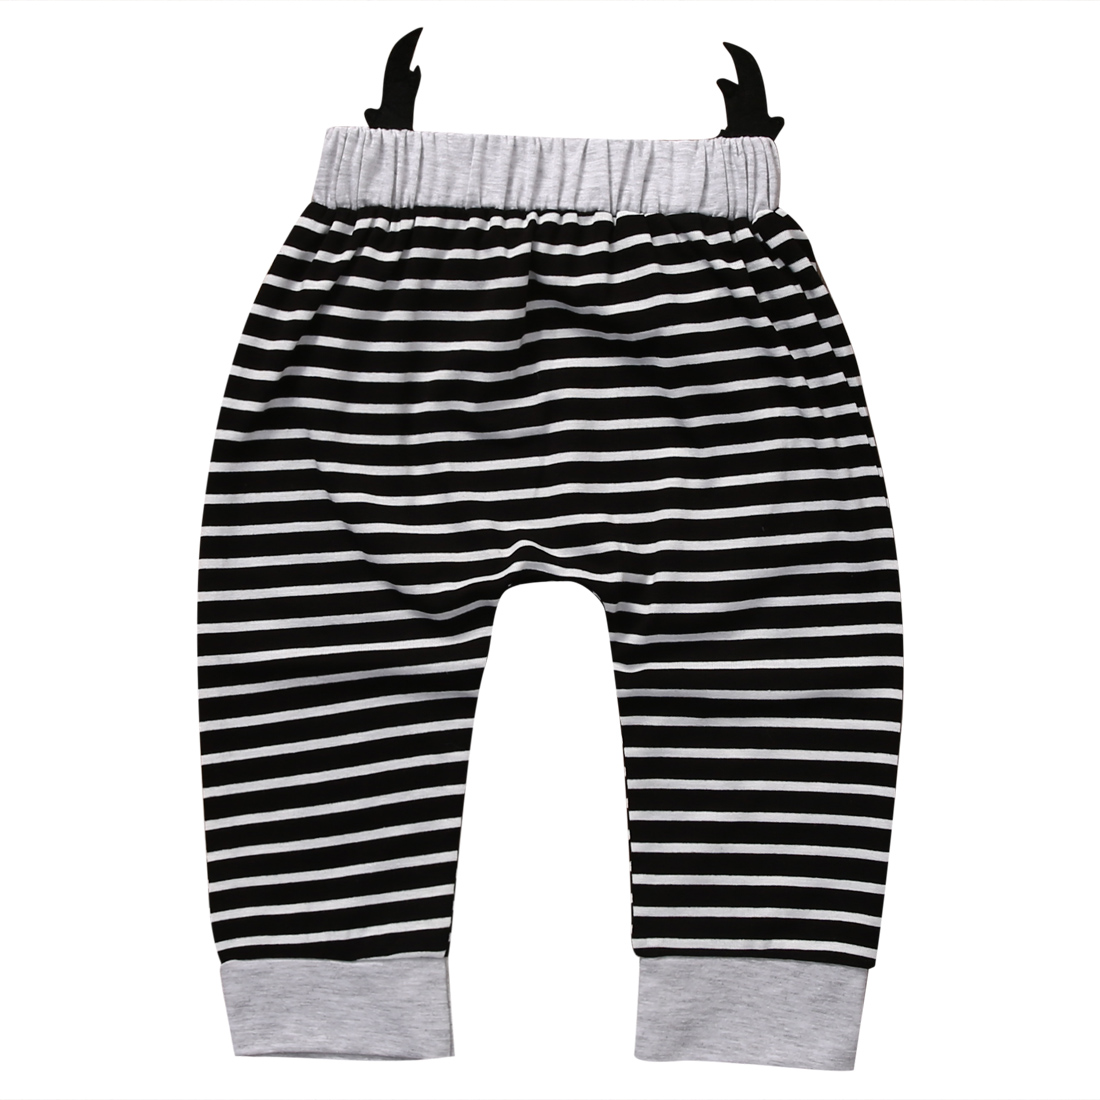 Baby Girls Boys Pants Cotton Harem Pants Cartoon Casual Toddler Baby Bottoms Pants Boys Girls Cartoon Harem Pants Trousers